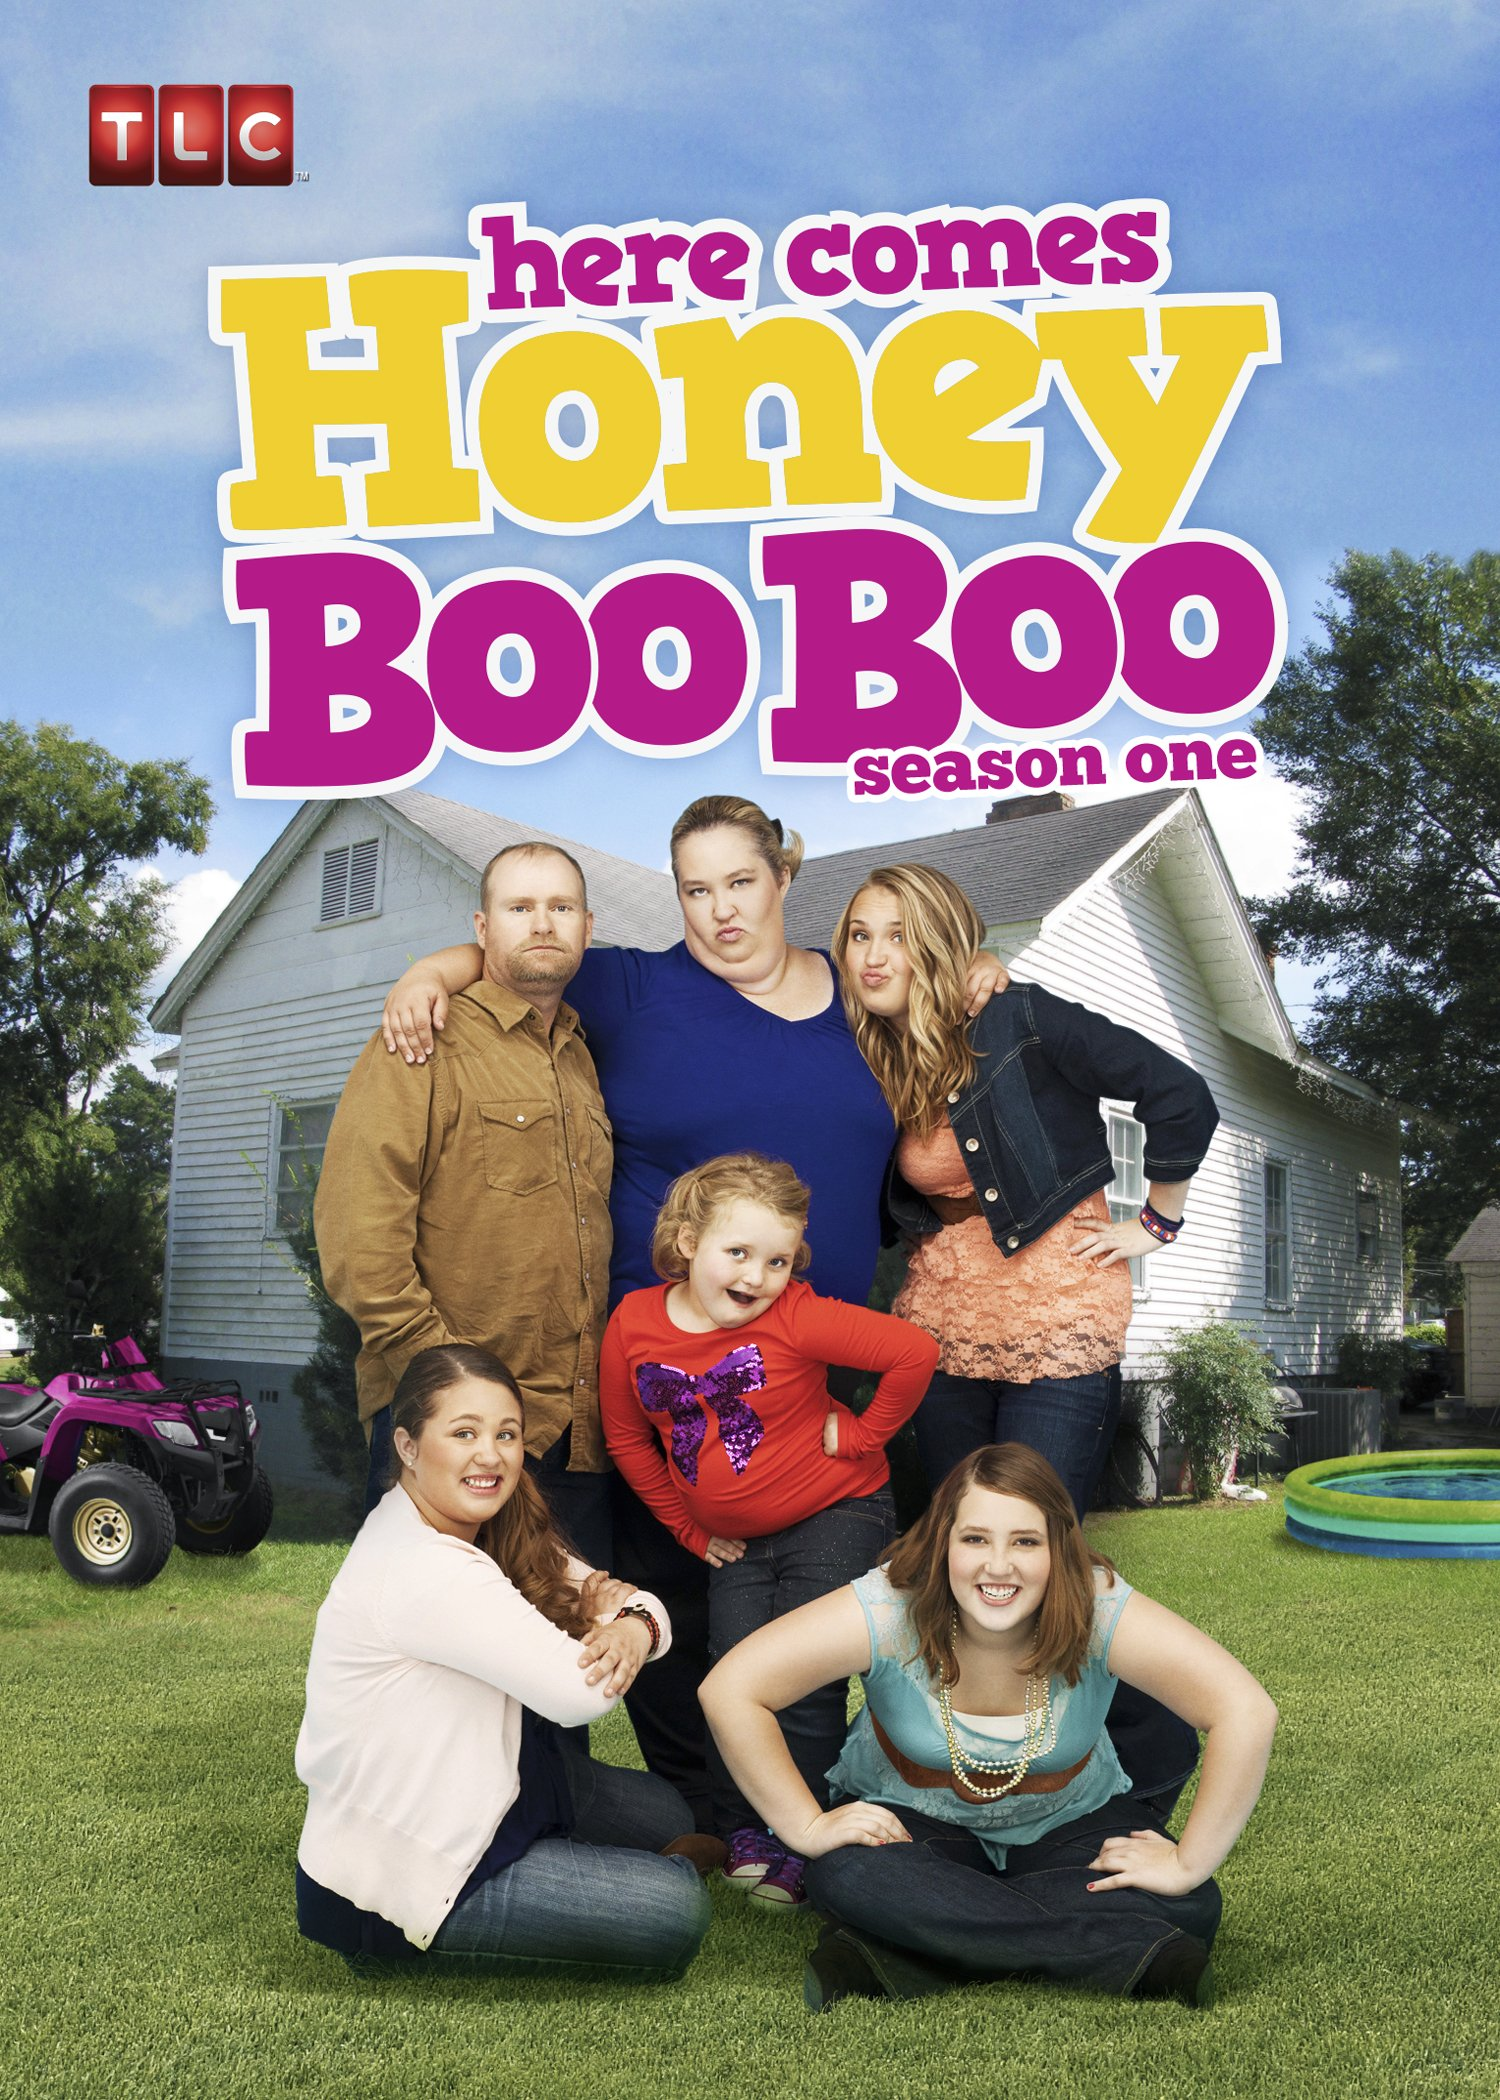 Here Comes Honey Boo Boo Season 1 by Discovery Channel